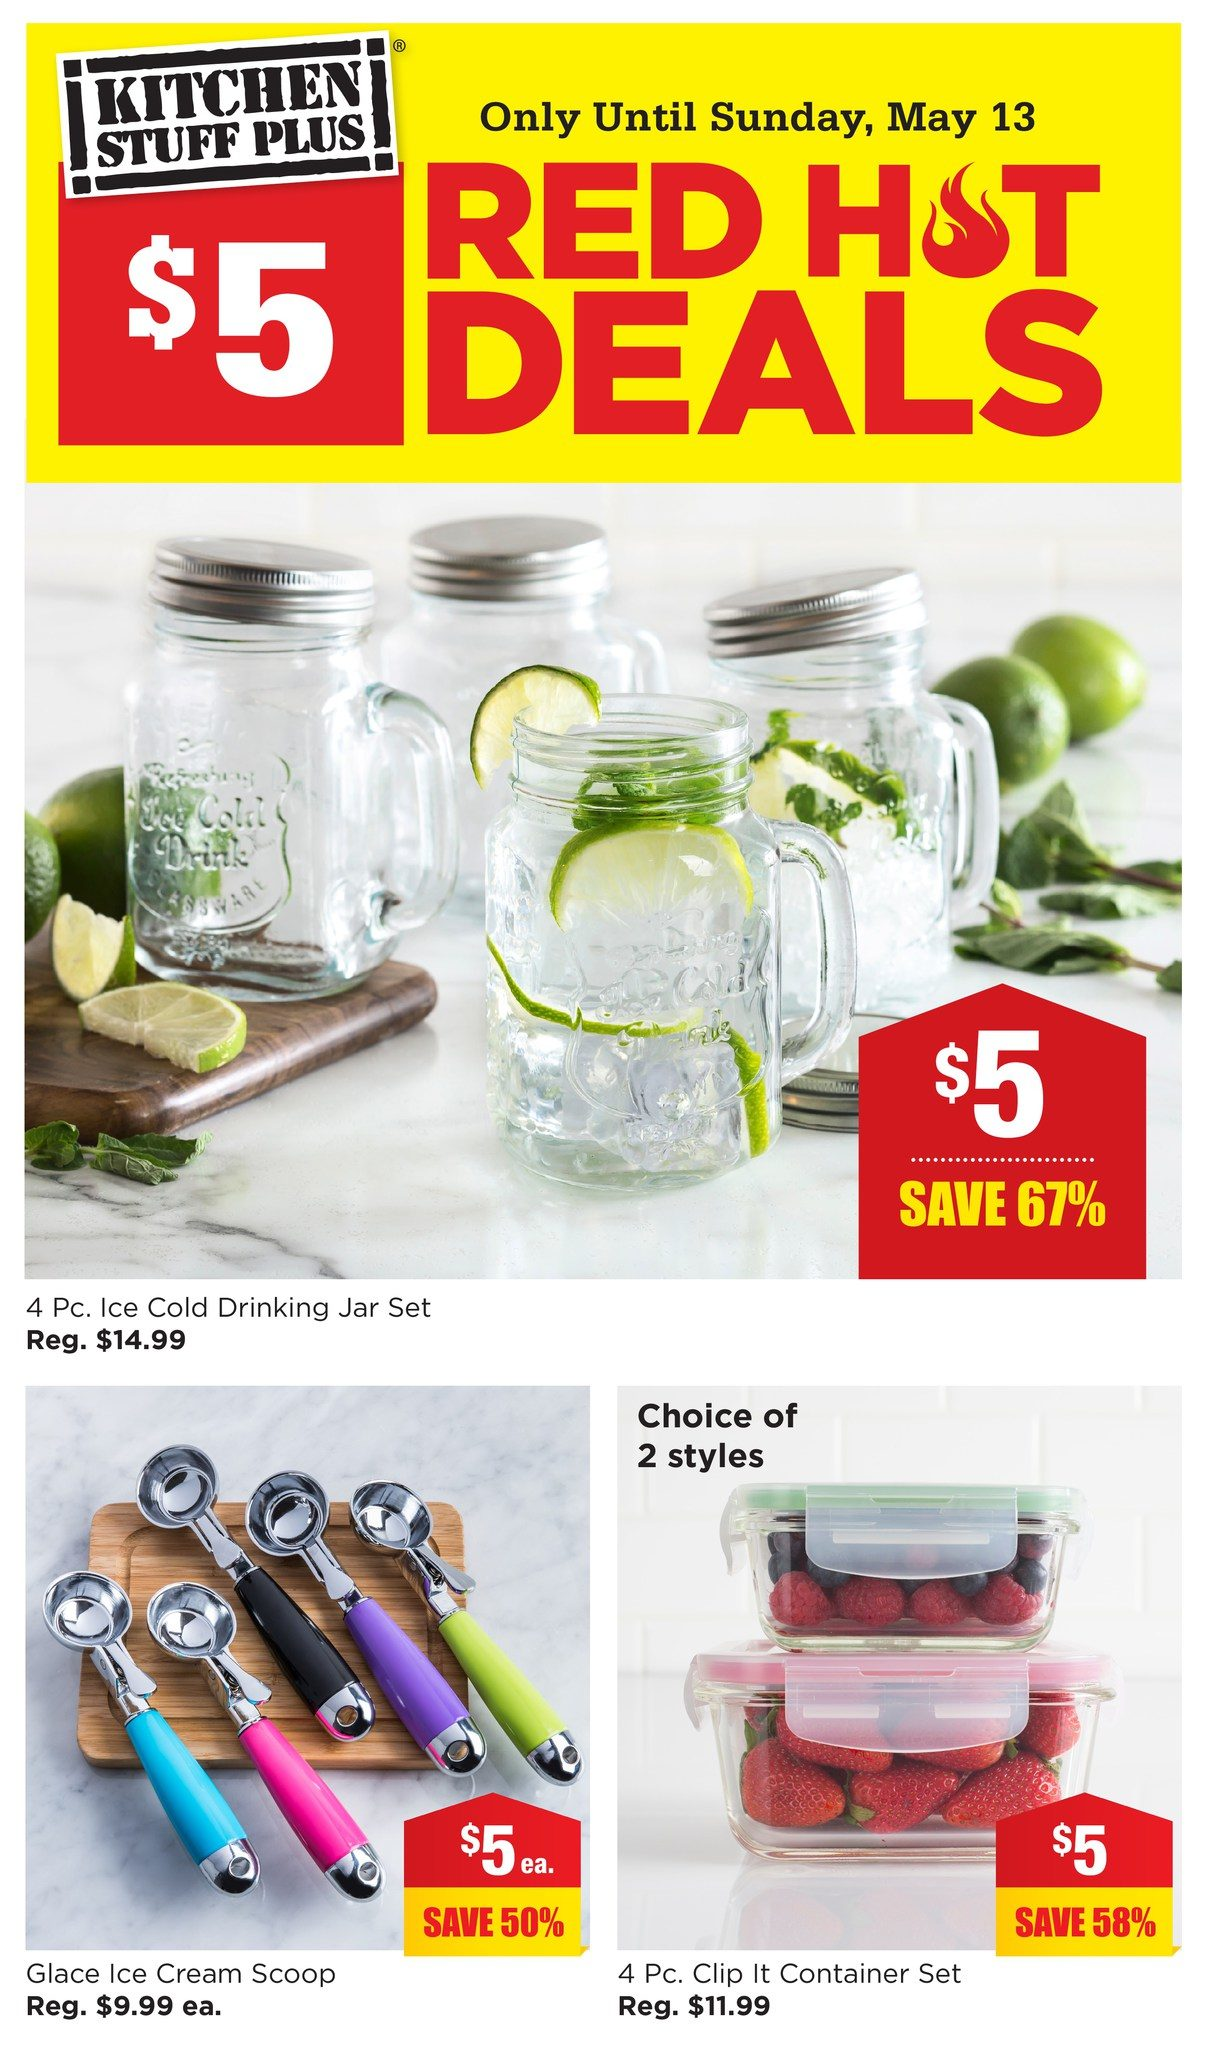 Kitchen Stuff Plus Weekly Flyer Red Hot Deals 5 Deals May 7